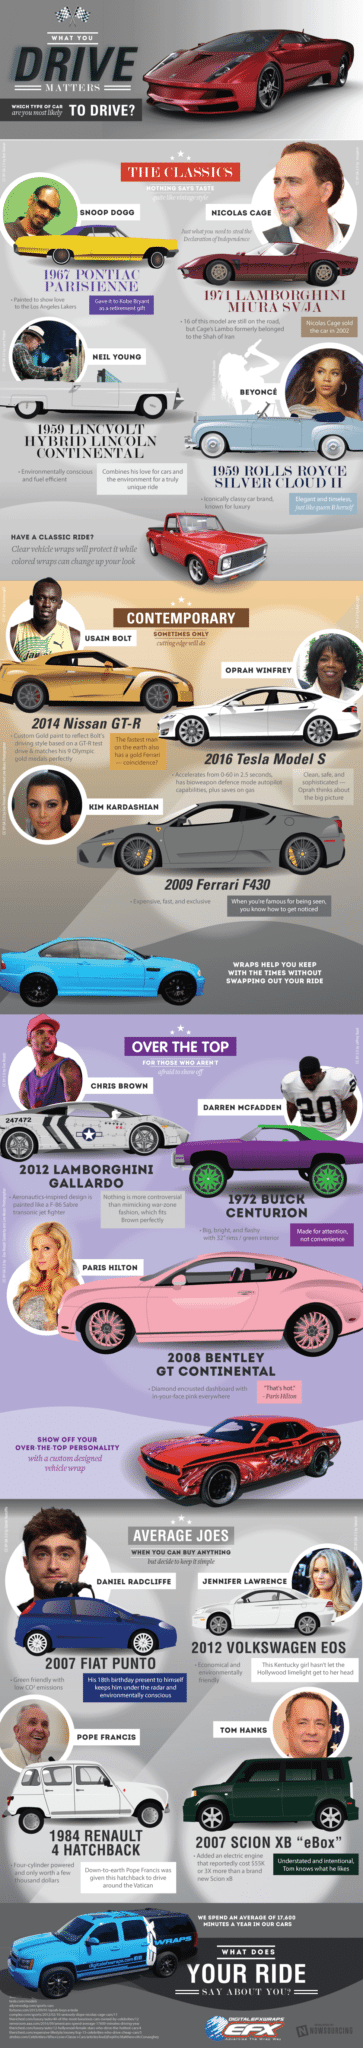 Does Your Car Reveal Your Personality? [Infographic] 2